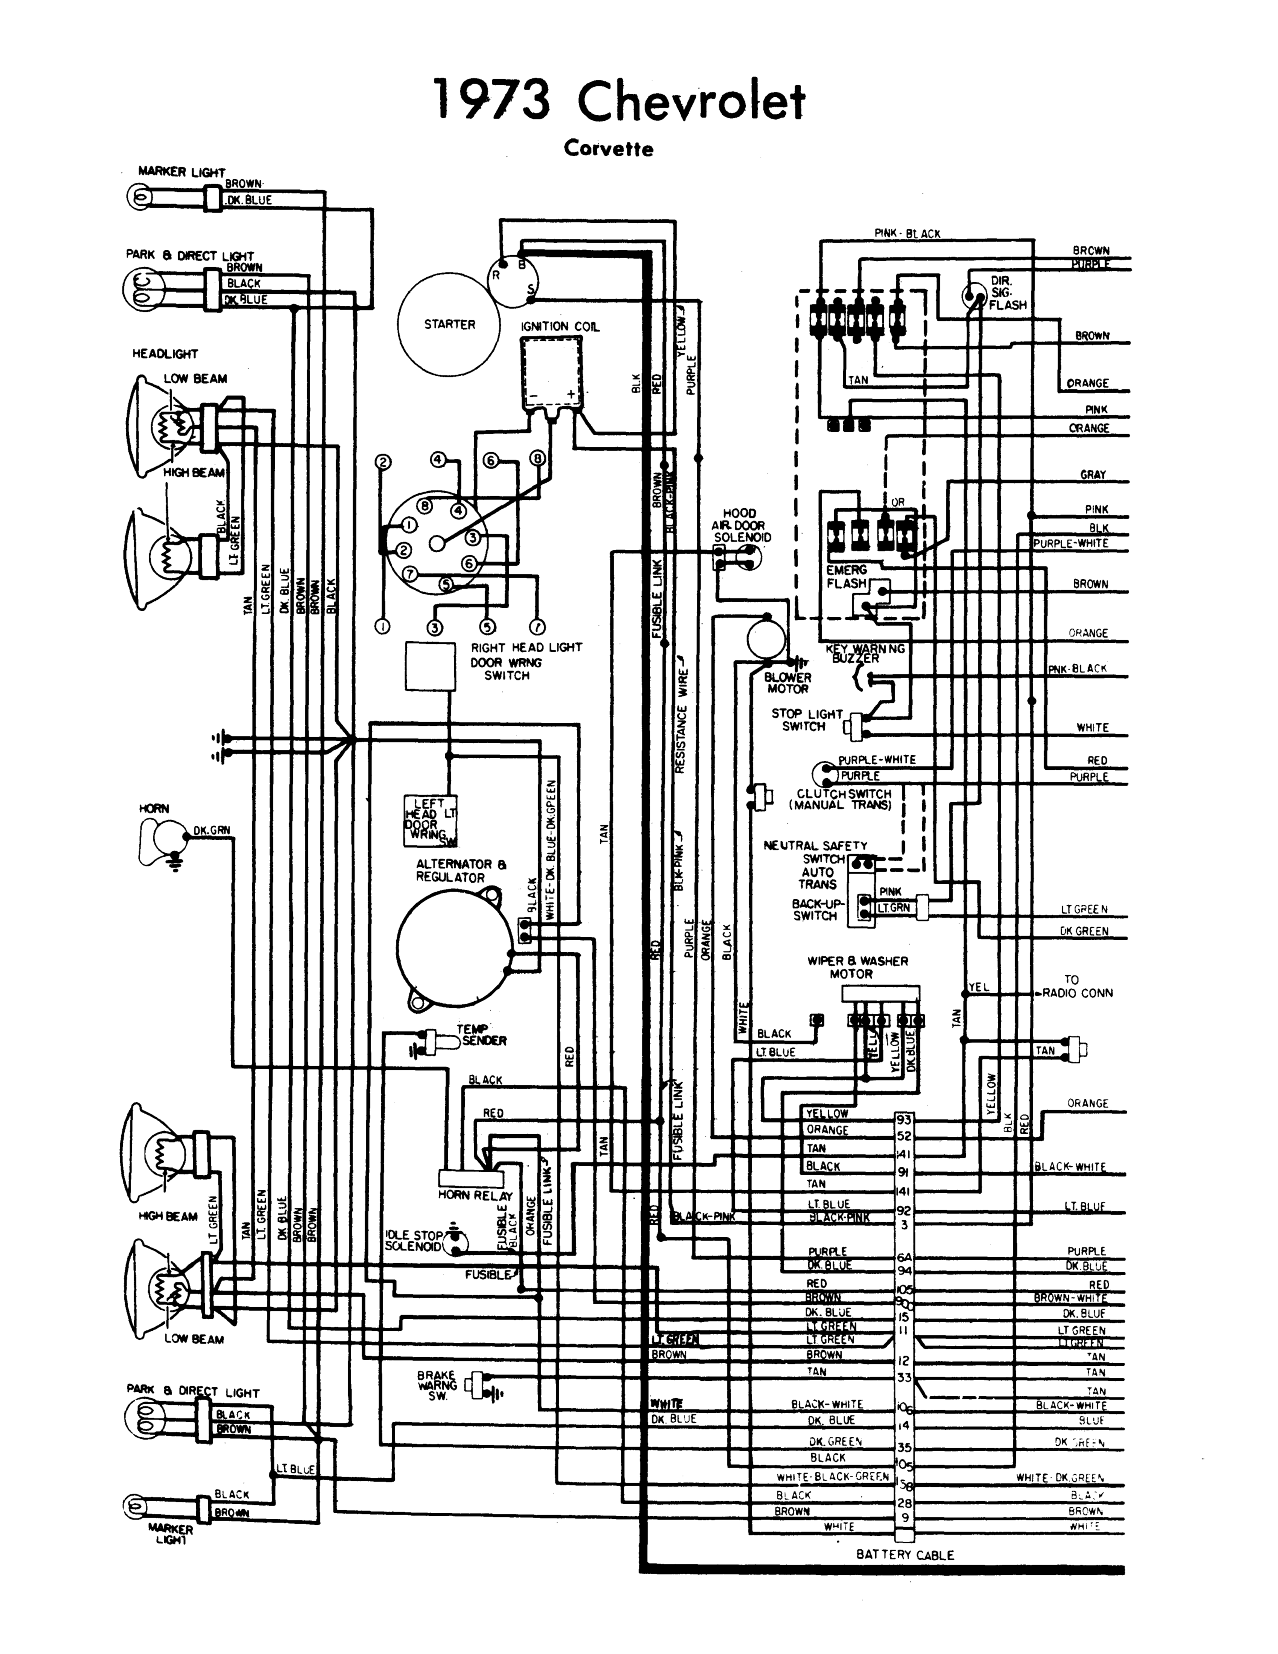 wiring diagram 1973 corvette chevy corvette 1973 wiring diagrams just for the heck of it. Black Bedroom Furniture Sets. Home Design Ideas